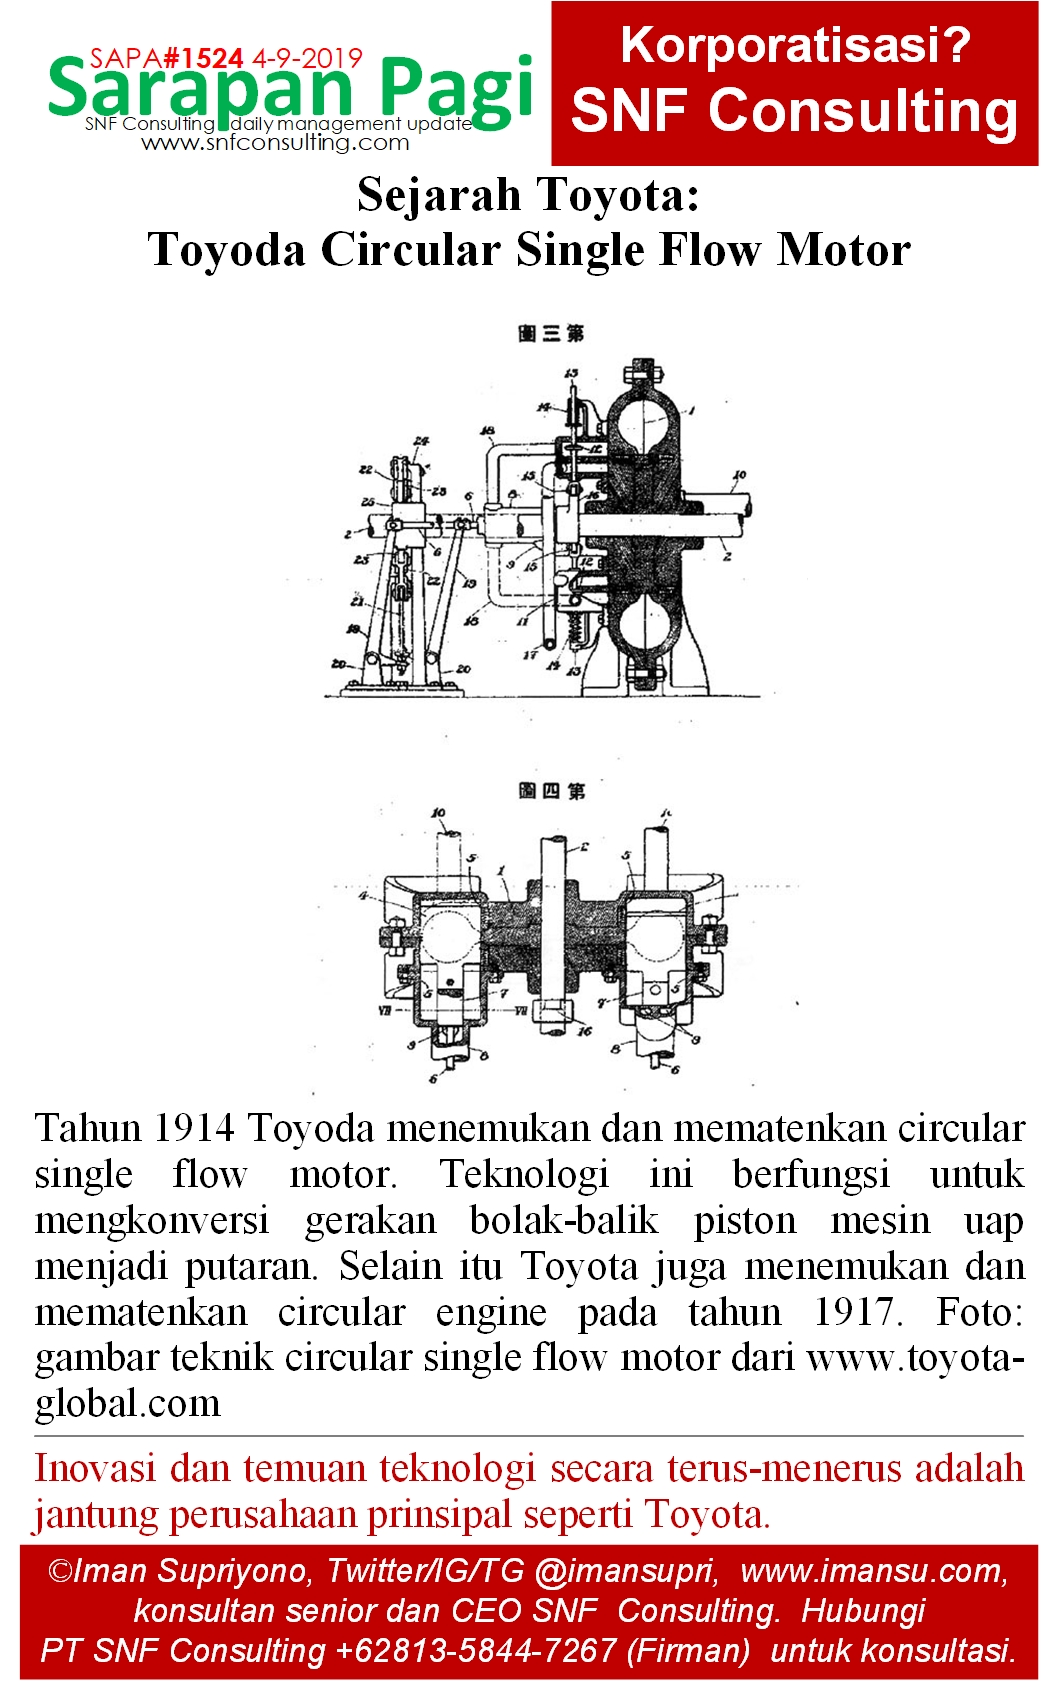 SAPA1524 Sejarah Toyota Toyoda single flow motor